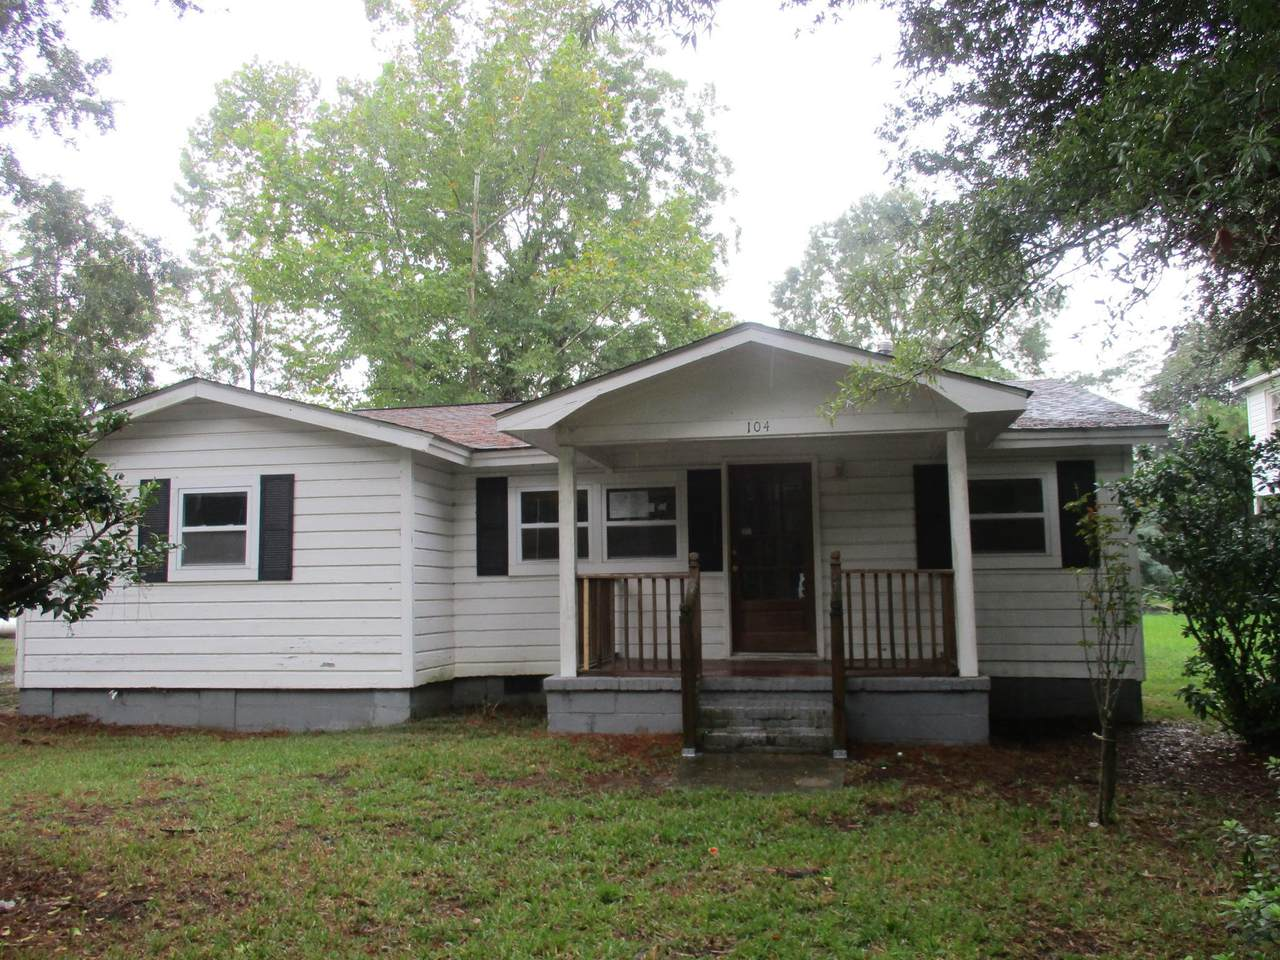 104 County Rd S-18-580 - Photo 1